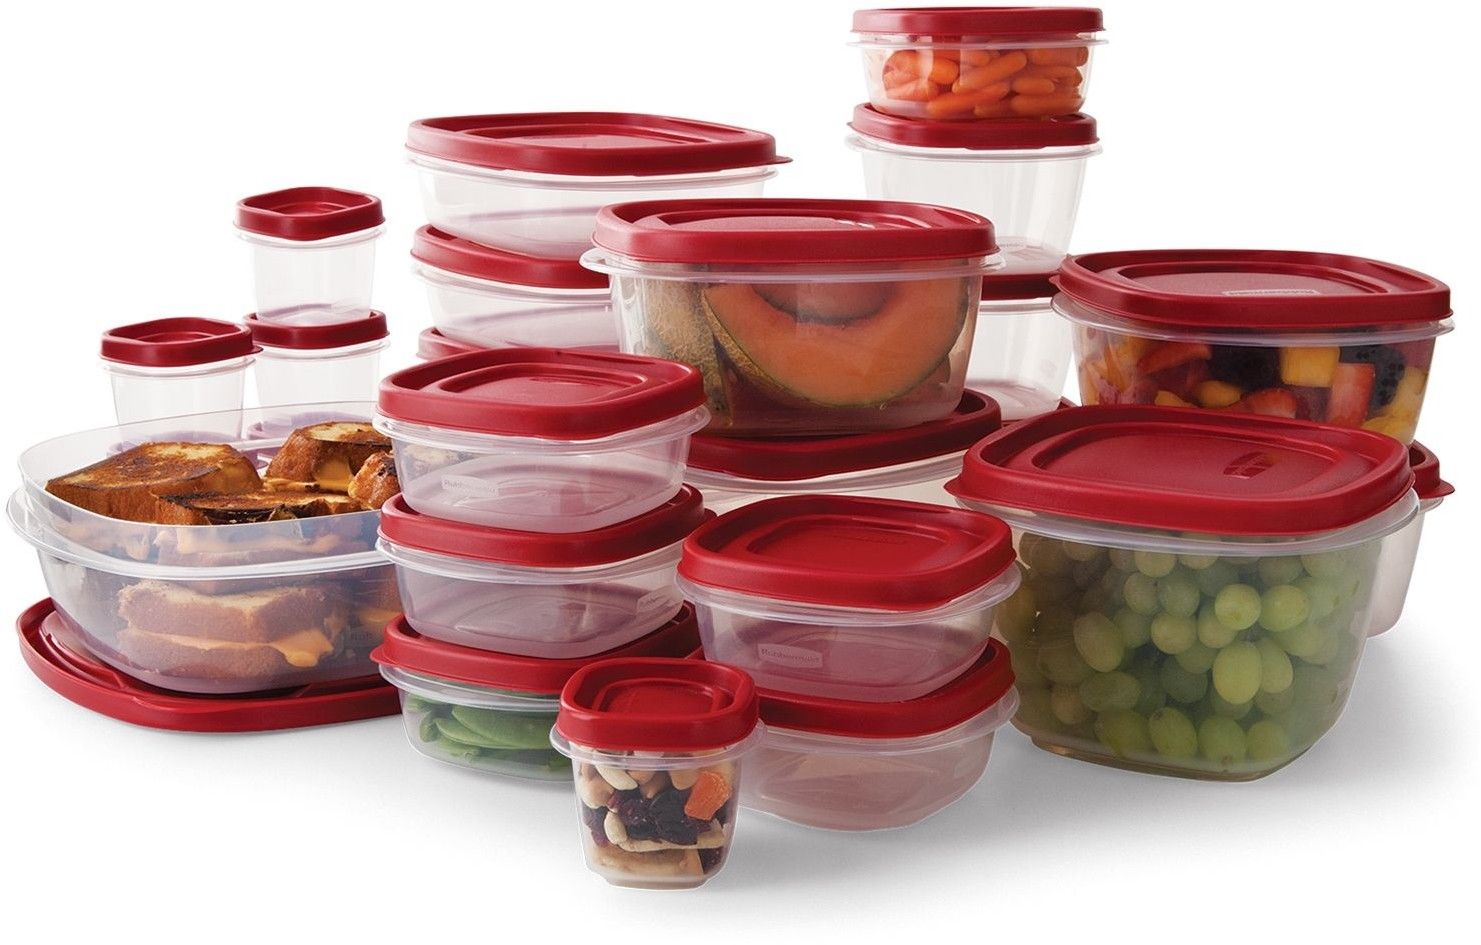 Rubbermaid Plastic Food Storage Containers Easy Find Lid BPA-FREE Set 50 Pc. 1